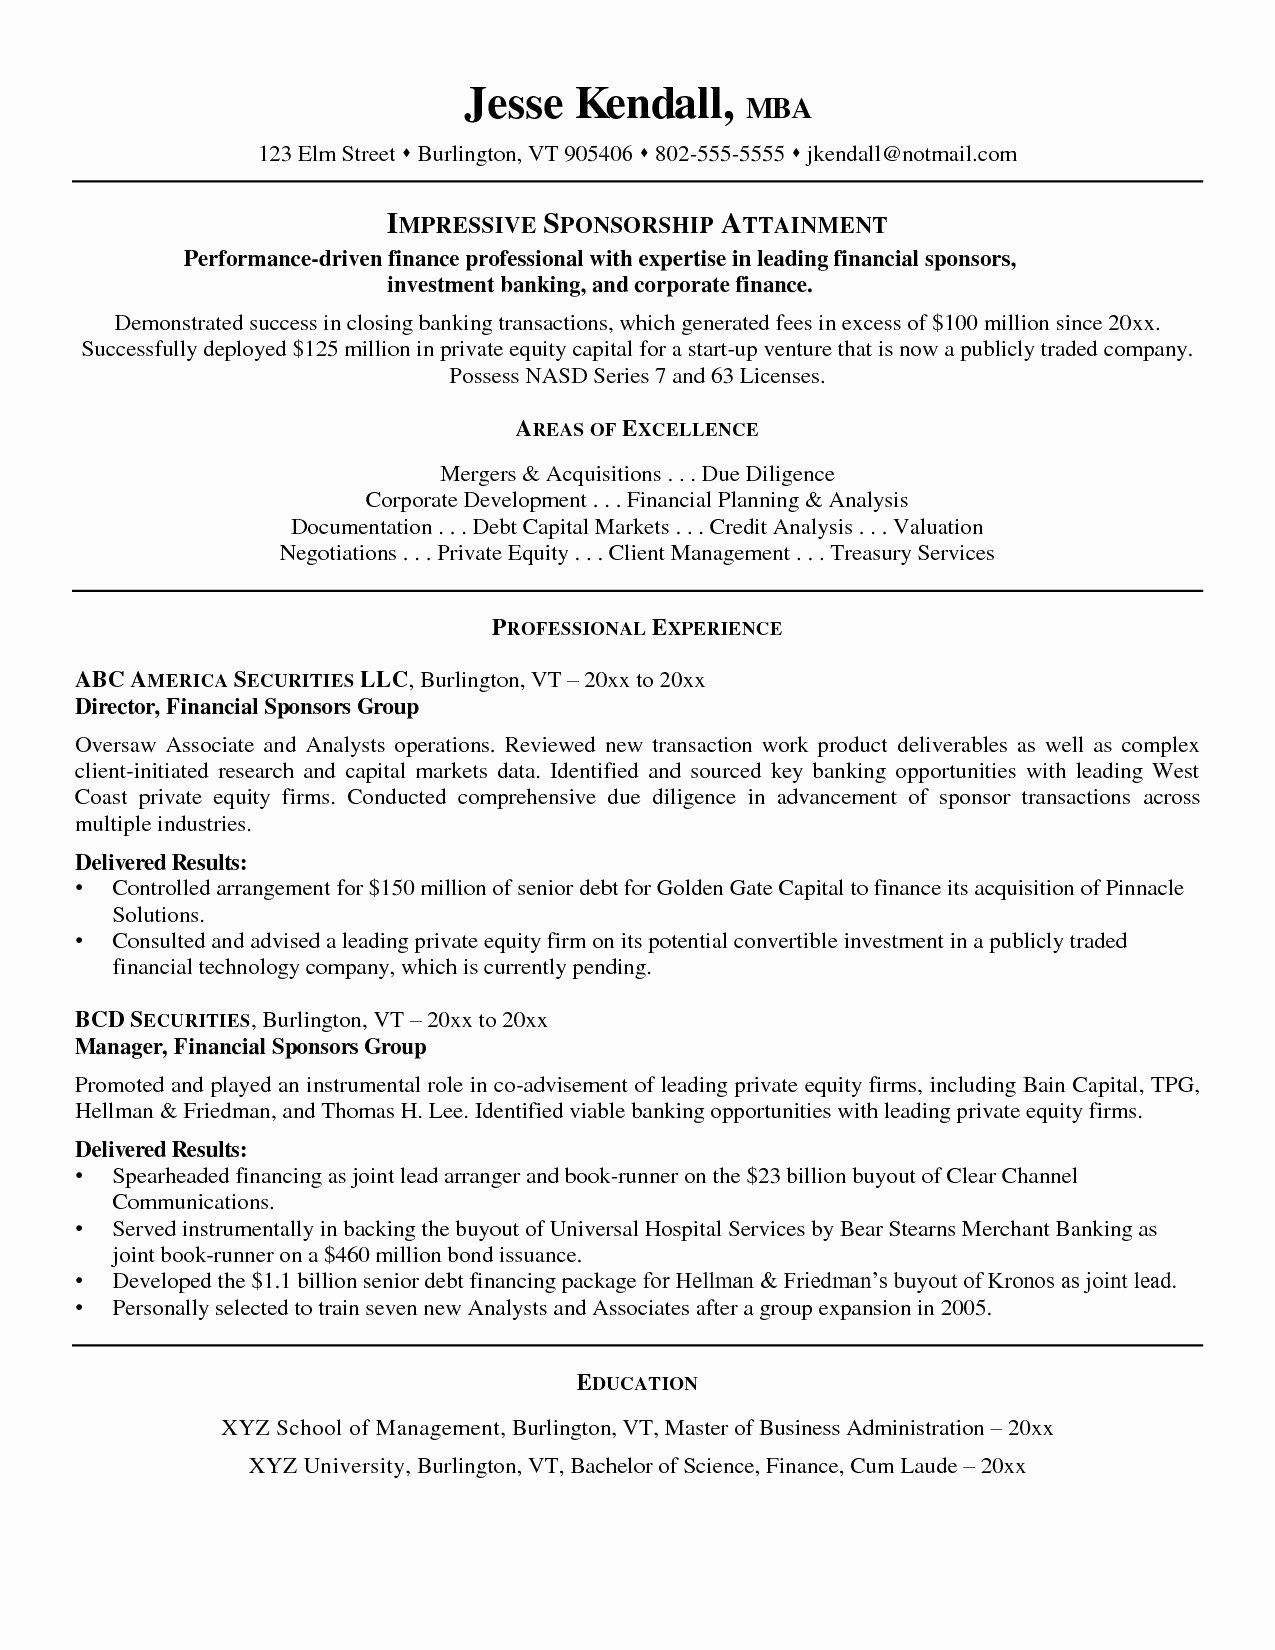 Salesforce Administrator Resume Examples Unique 30 Best Salesforce Administrator Resume Sample Resume Examples Job Resume Examples Good Resume Examples